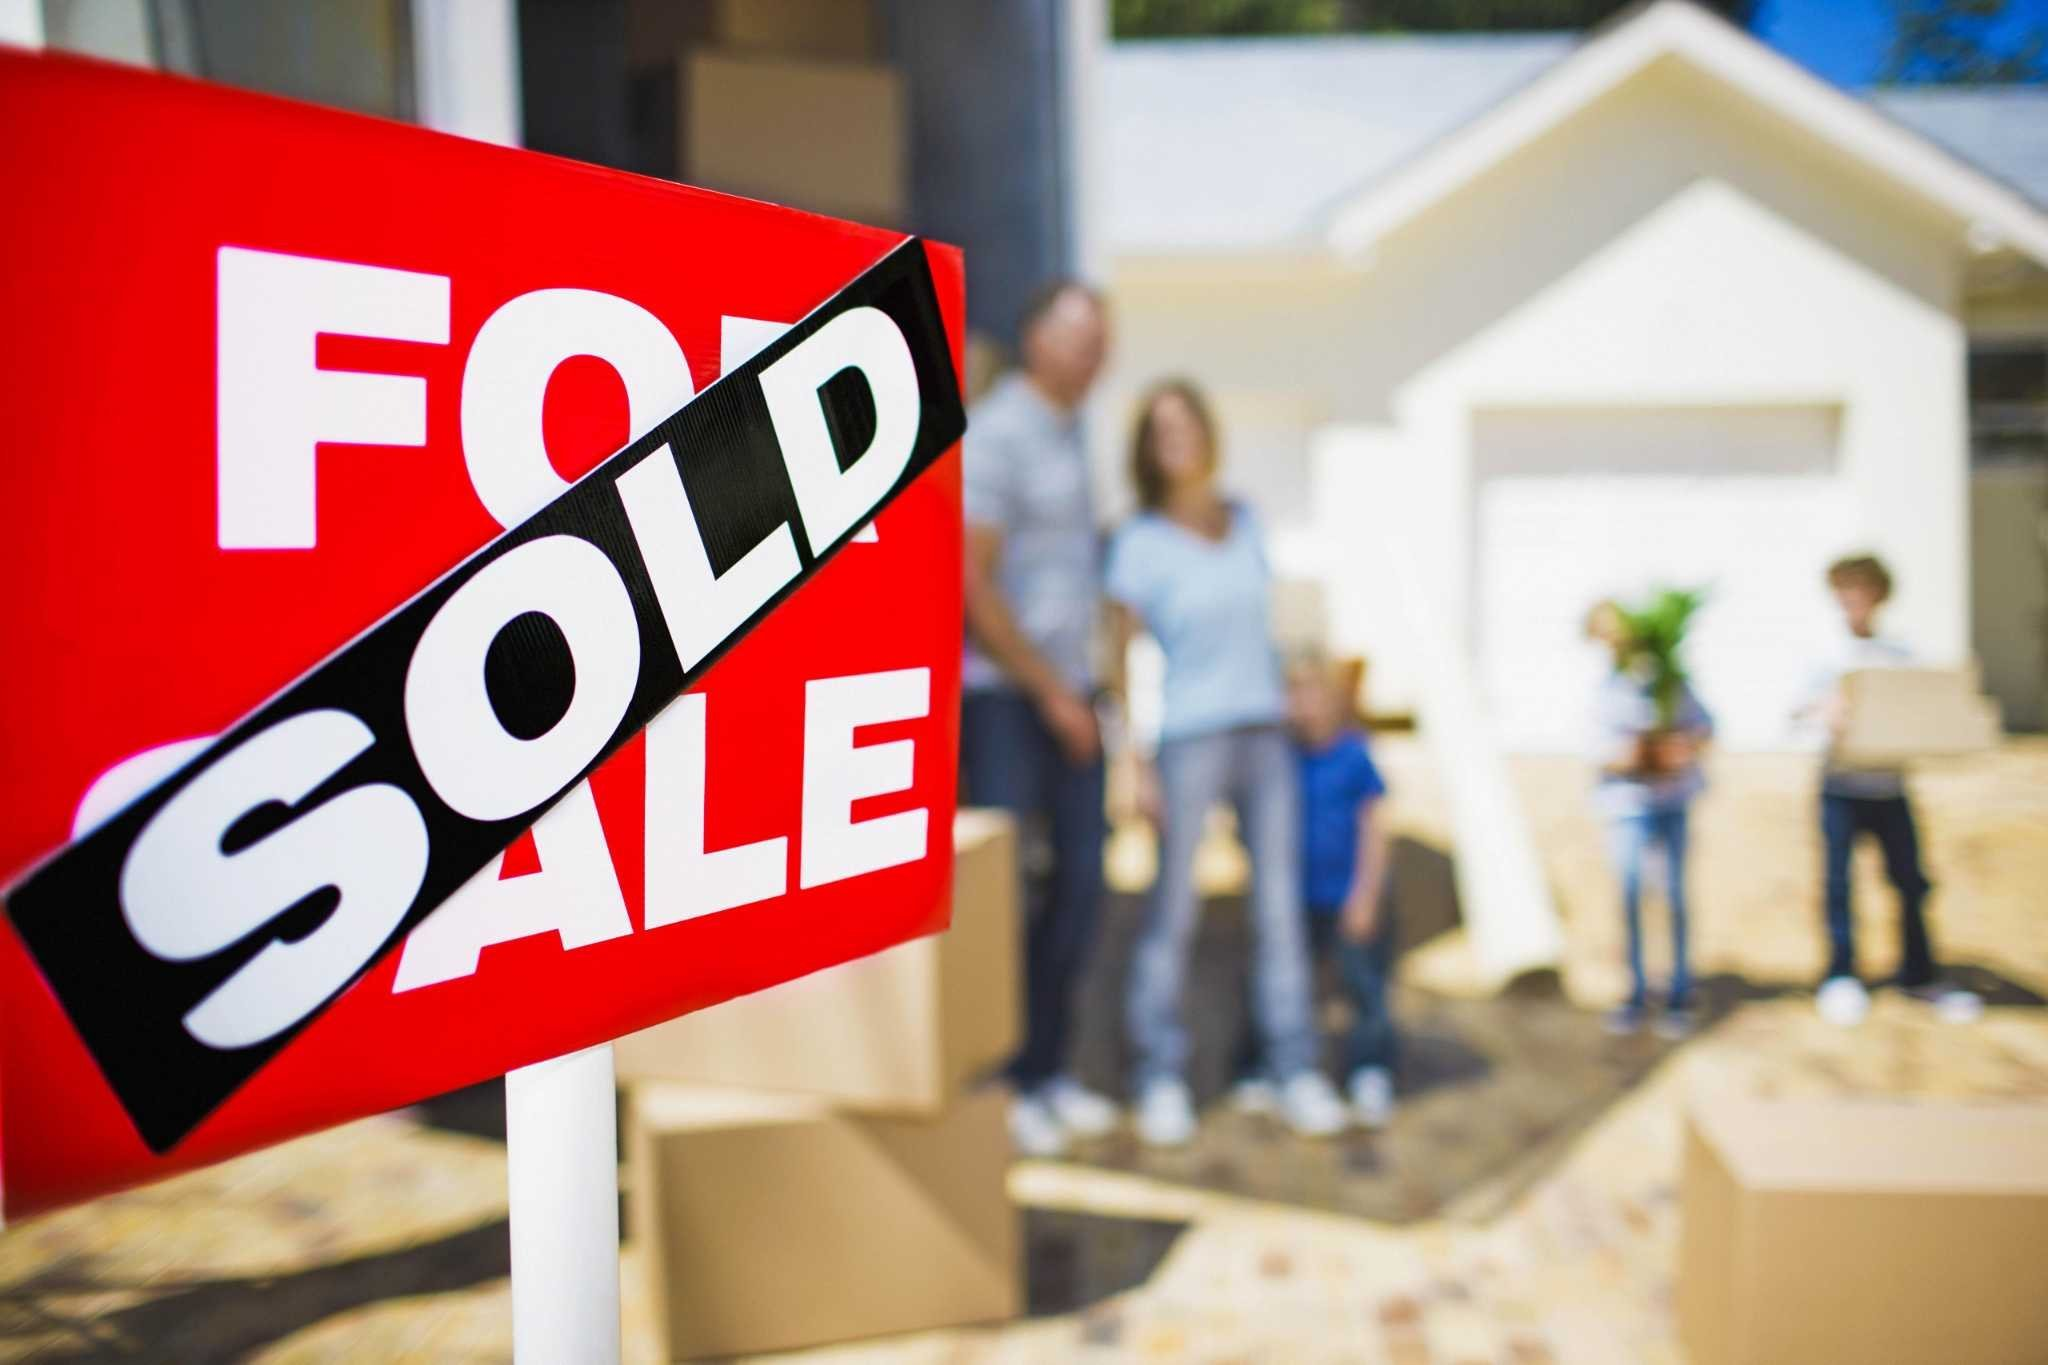 REAL ESTATE PRICES ARE SOARING - IS IT A BUBBLE?